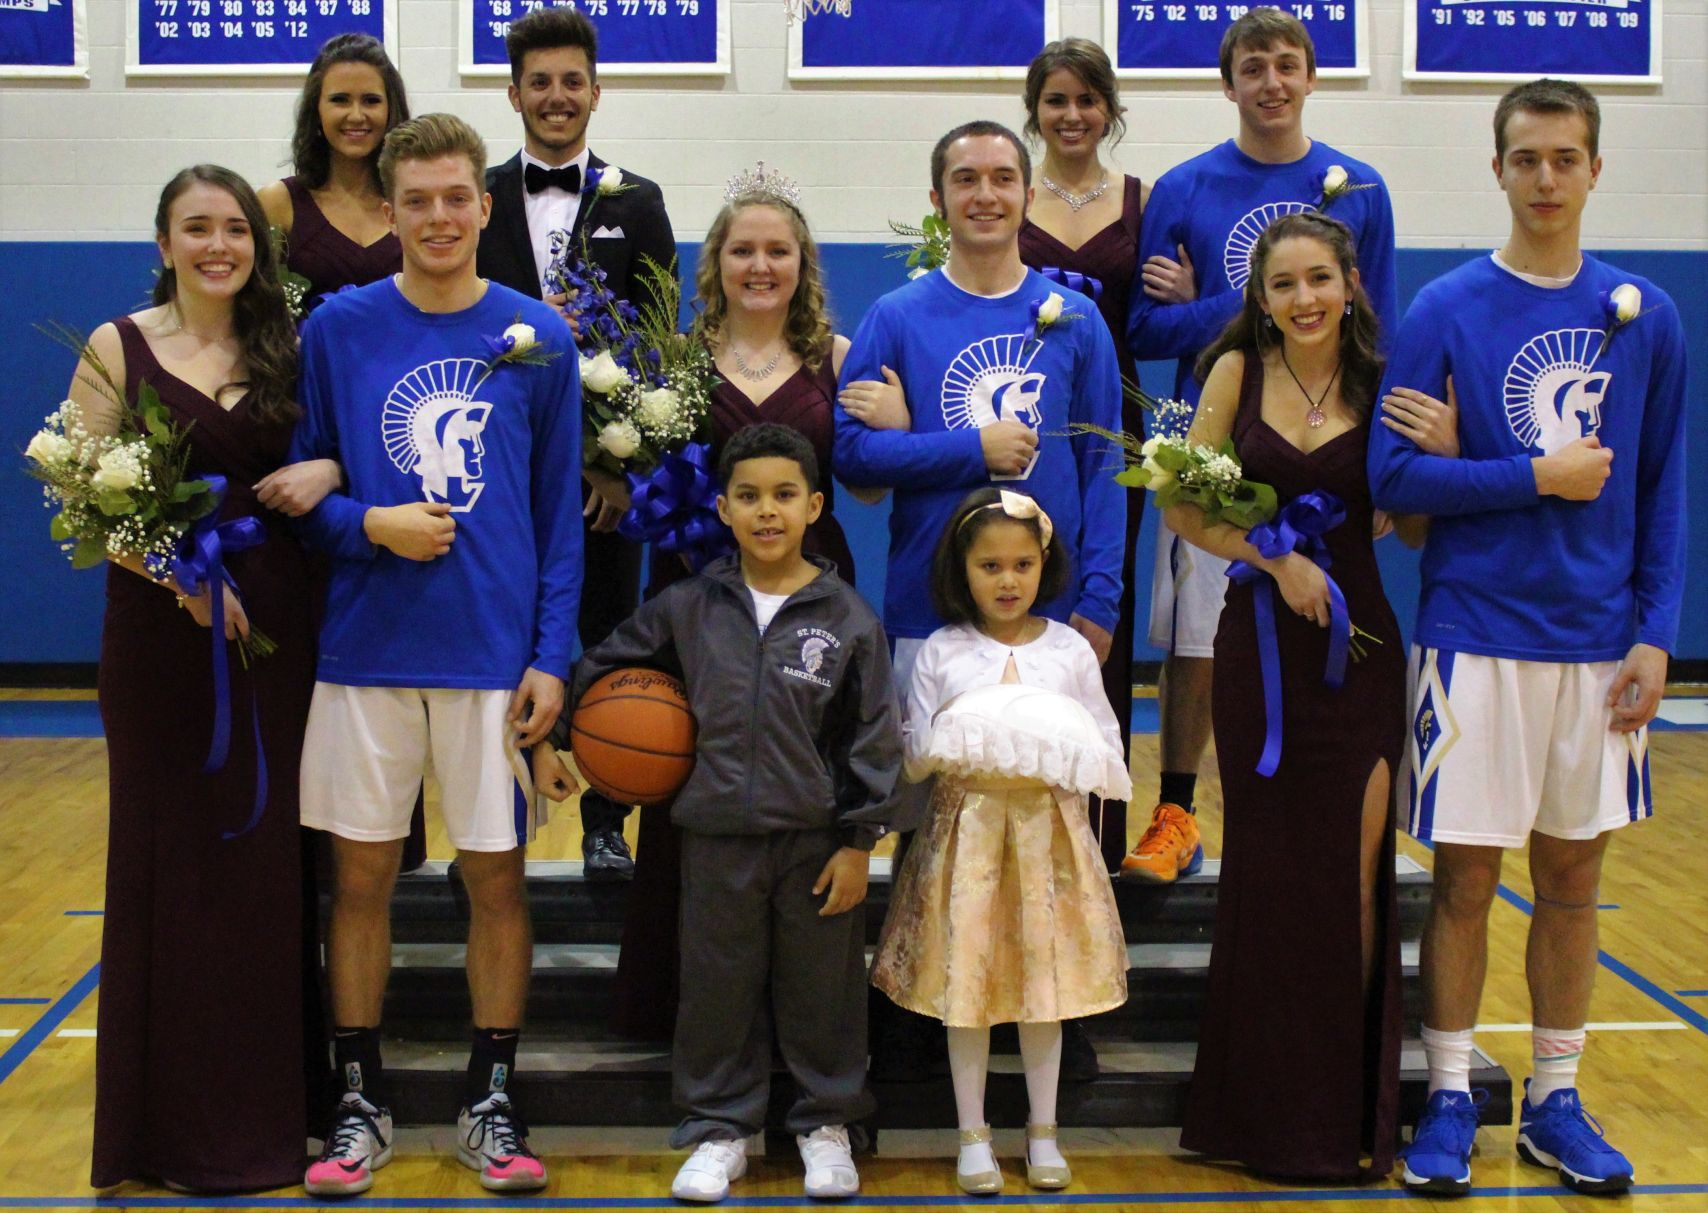 GALLERY: 2018 St. Peter's Homecoming Court